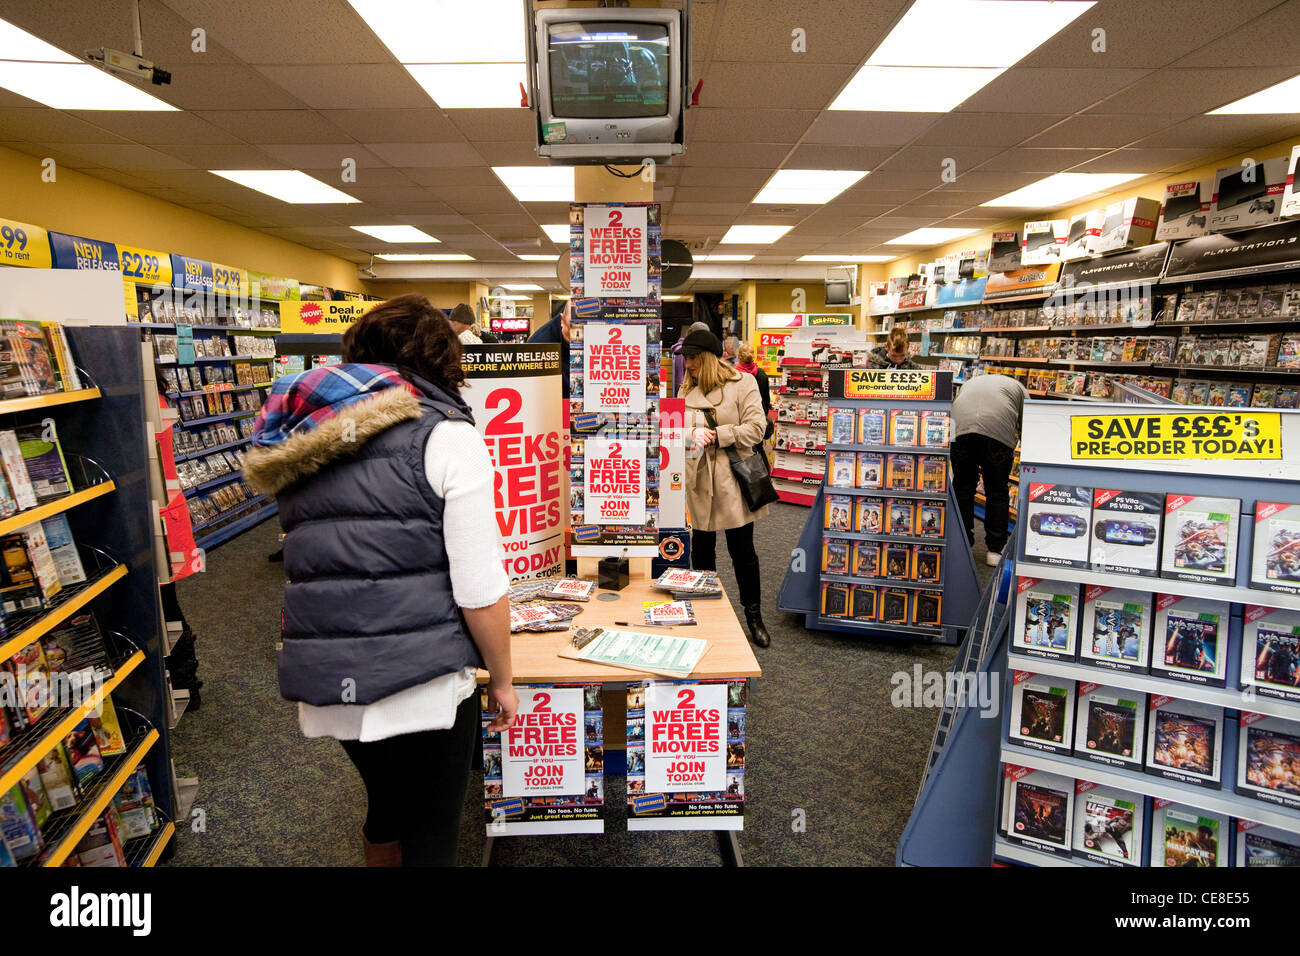 Teenage girl joining Blockbuster to rent movies, Newmarket  UK - Stock Image